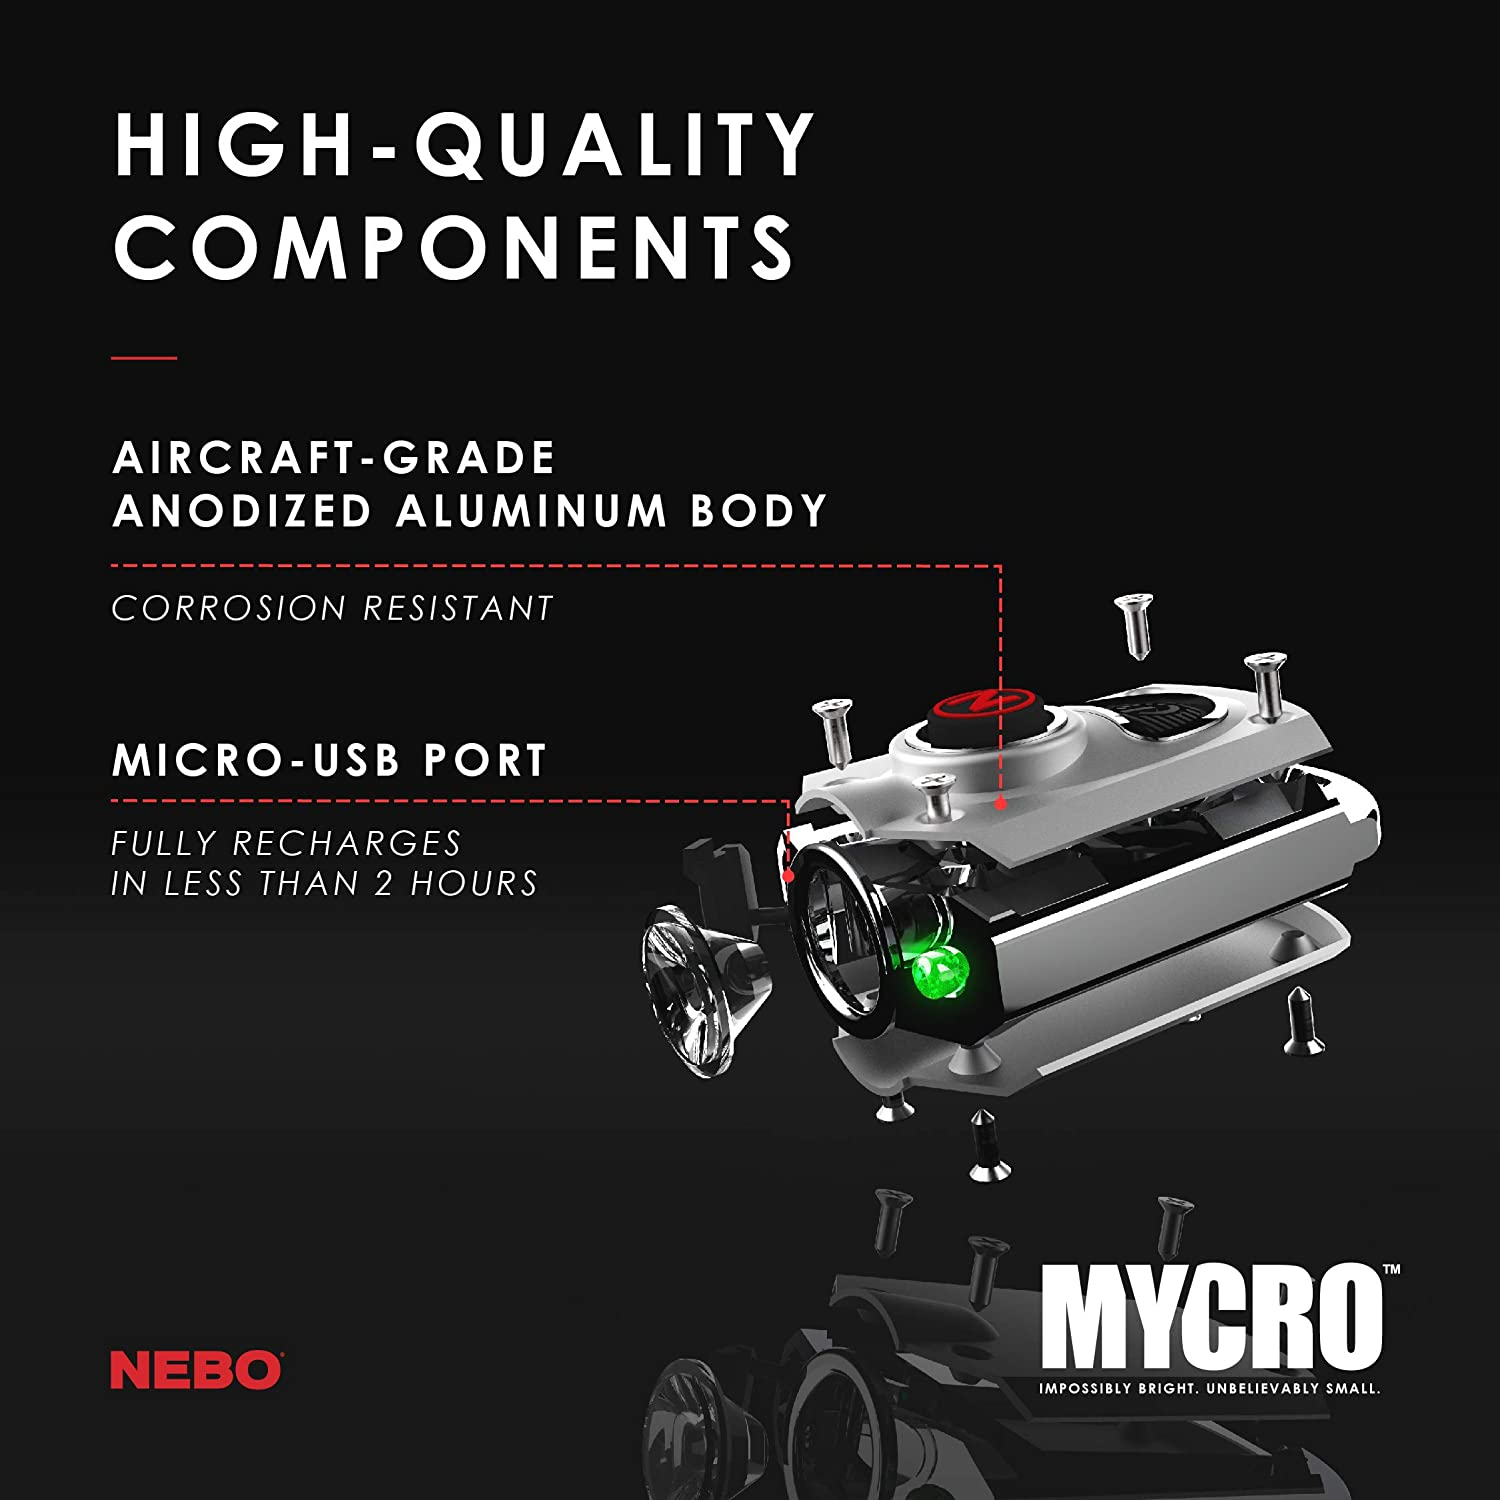 Lanyard or Keyring NEBO 400-Lumen Key Chain Flashlight: Features 6 Unique Light Modes MYCRO 6714 Including 400 Lumen Turbo Mode and 3 LED Color Options; Easily Secured via Necklace Silver